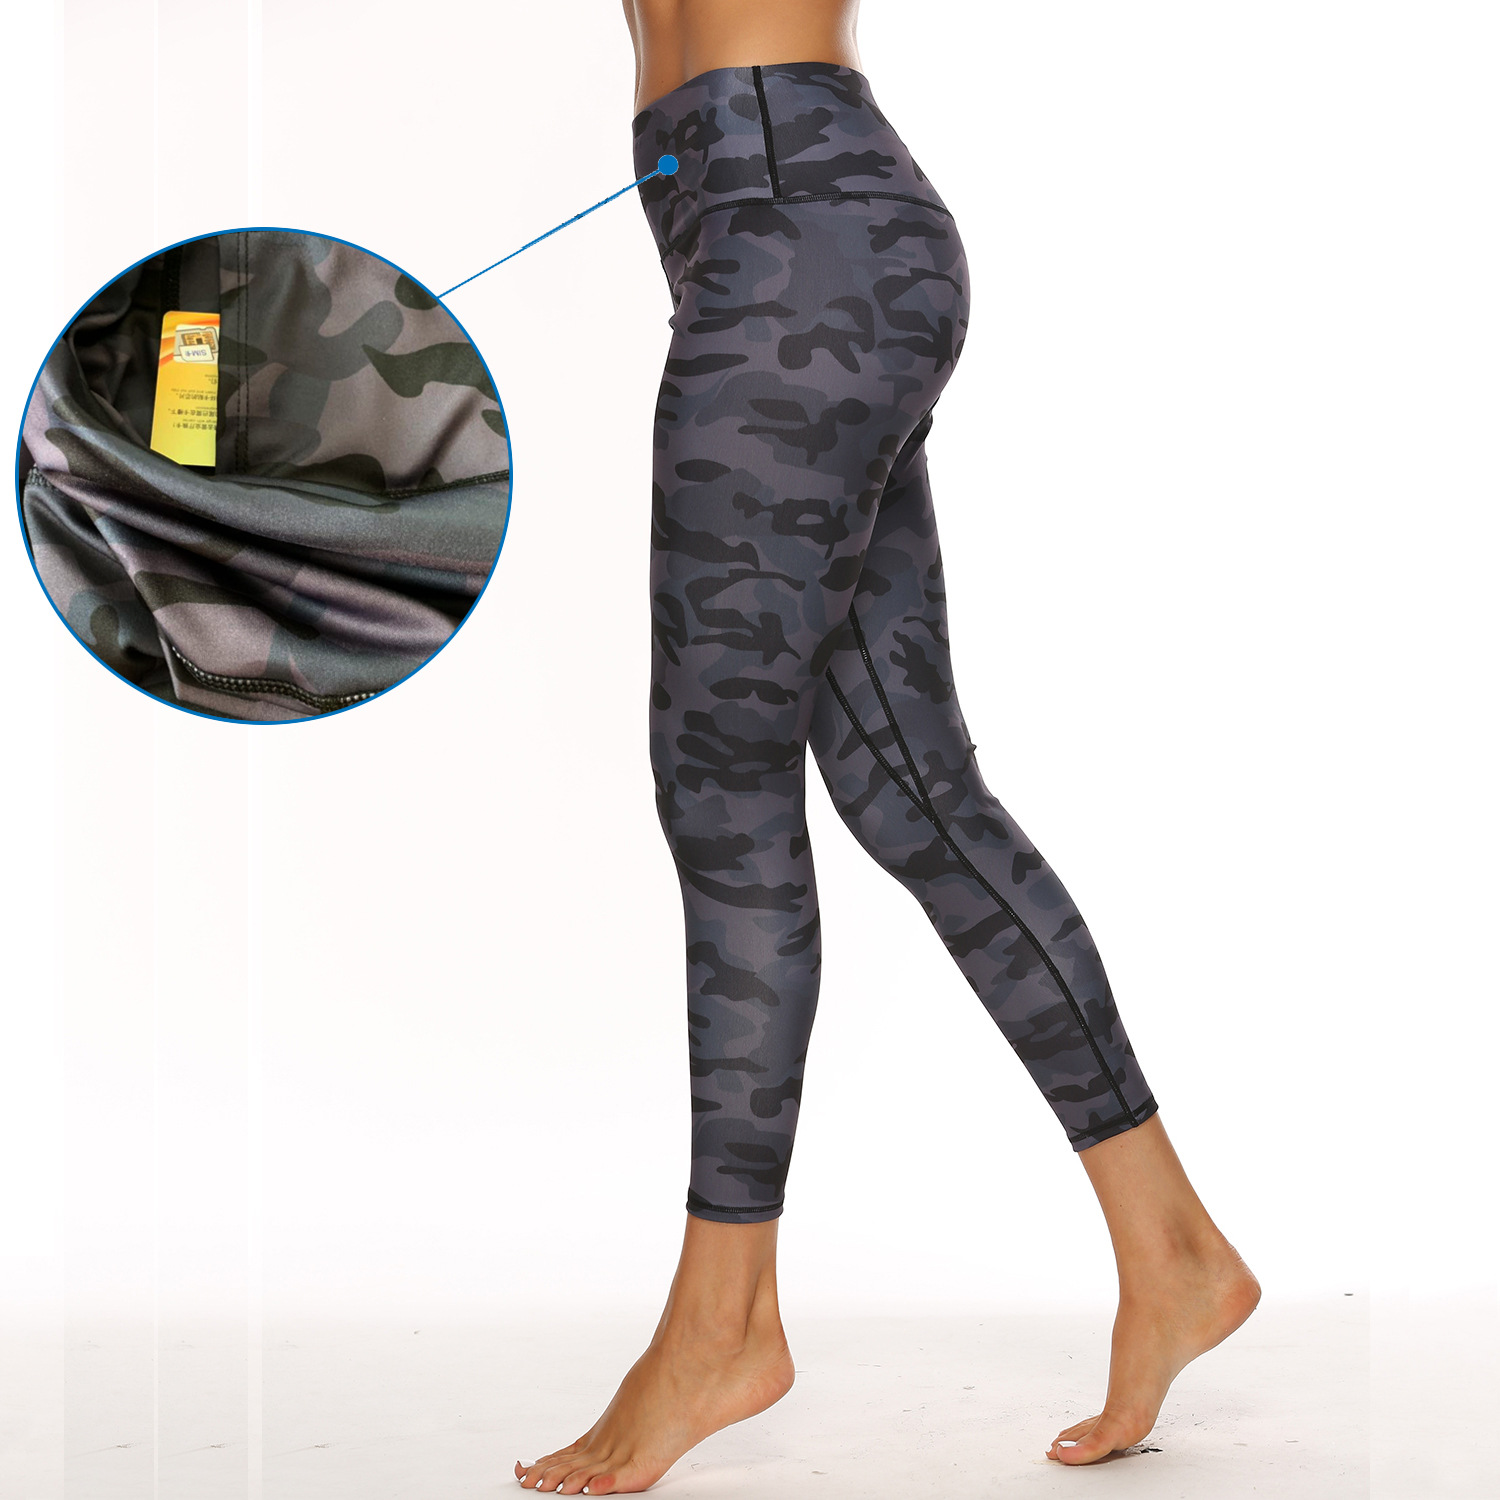 Europe And America High-waisted Tight Yoga Pants Inside Pocket Yoga Pant Leopord Pattern Camouflage Printed Fitness Women's Legg